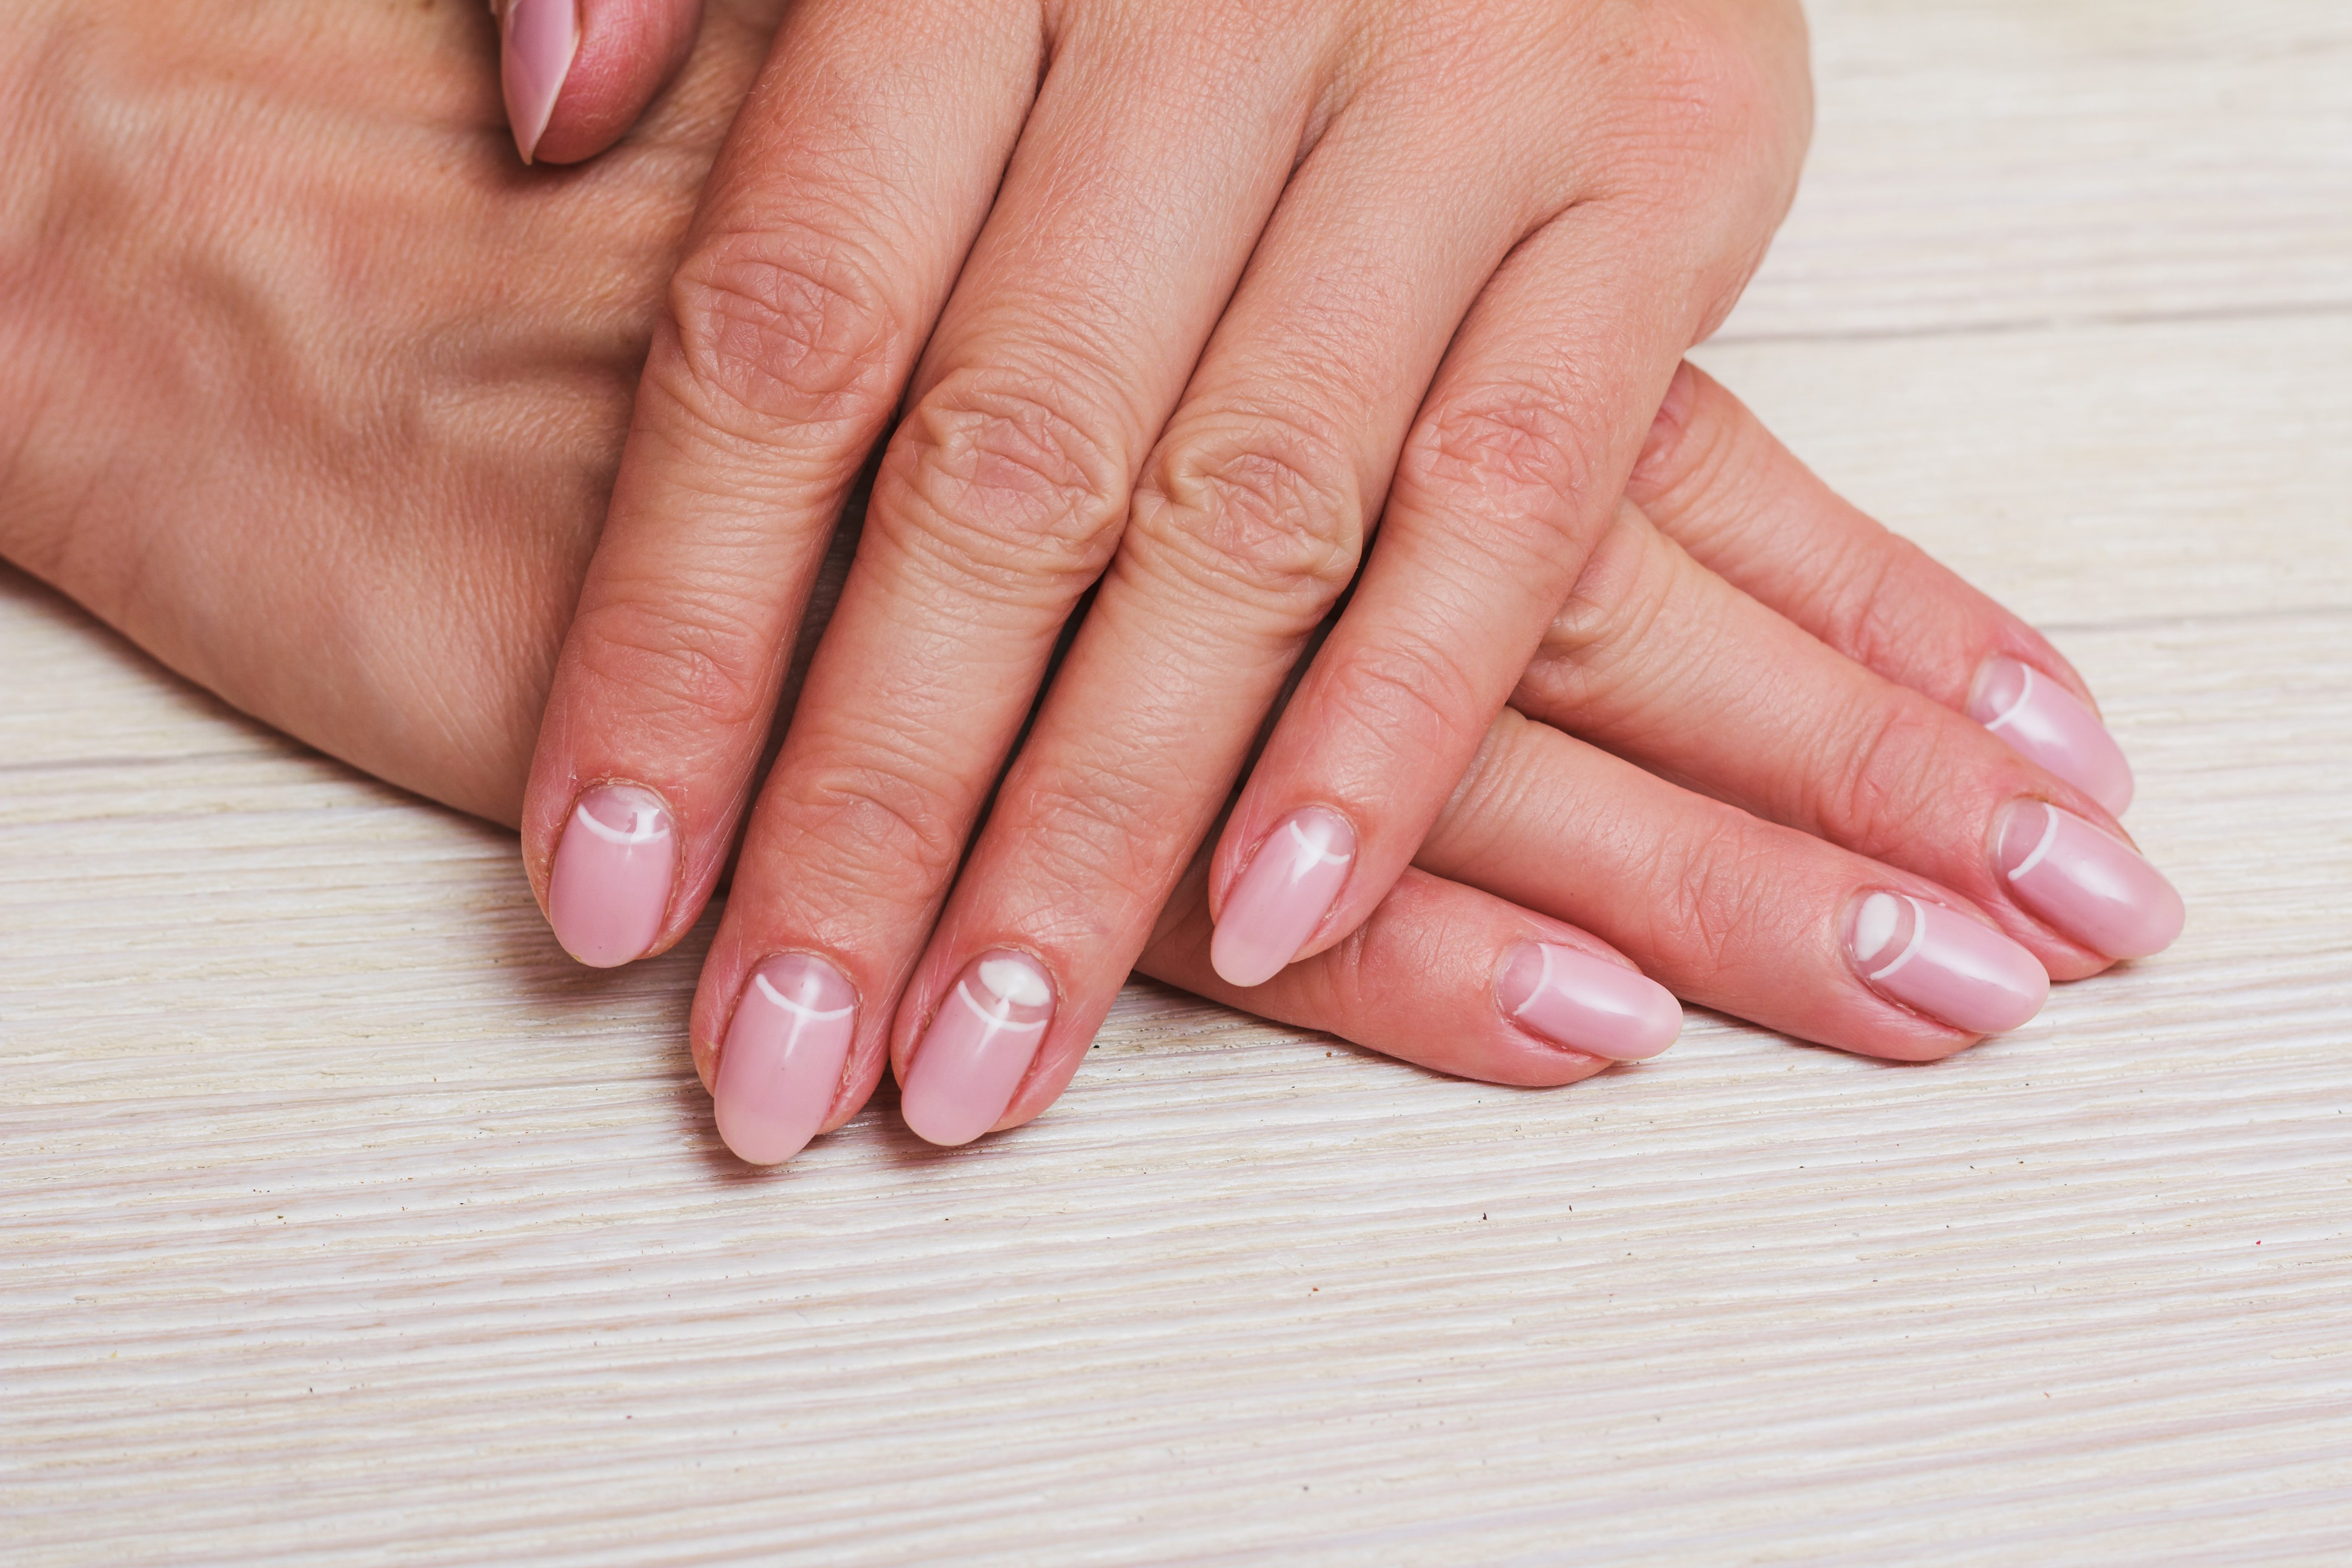 defined cuticles